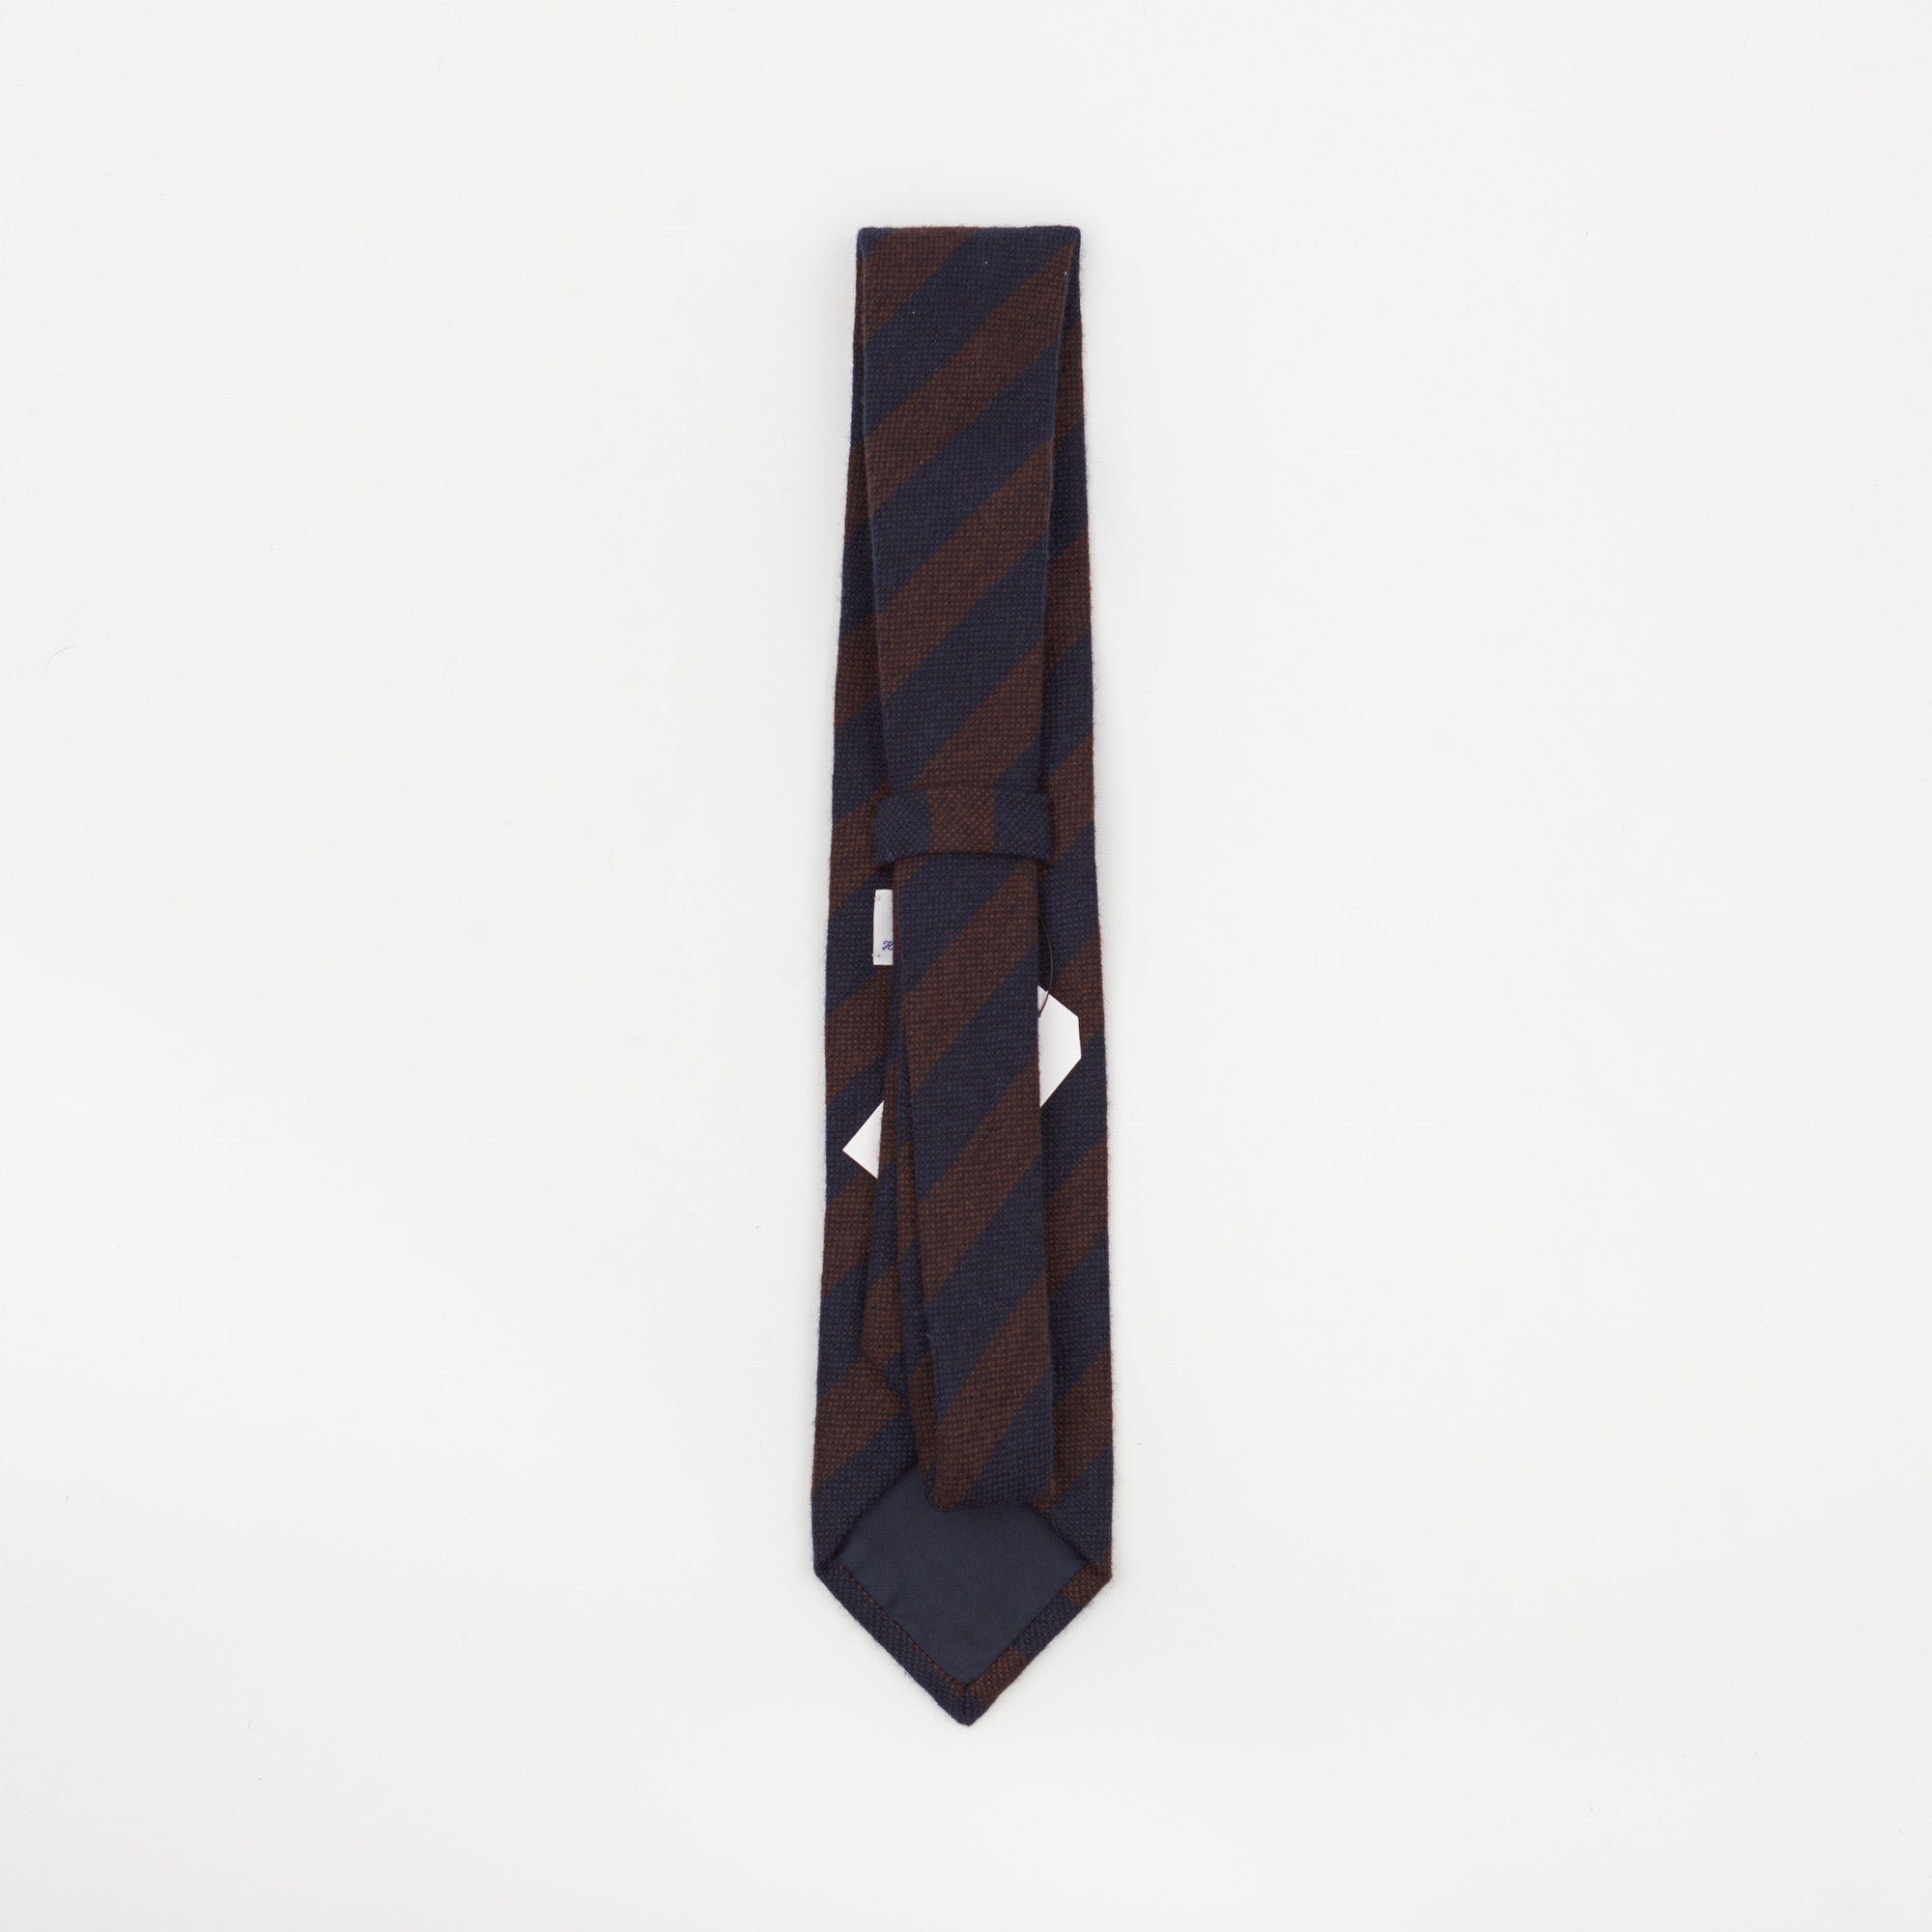 Burgundy & Navy Regimental Striped Tie